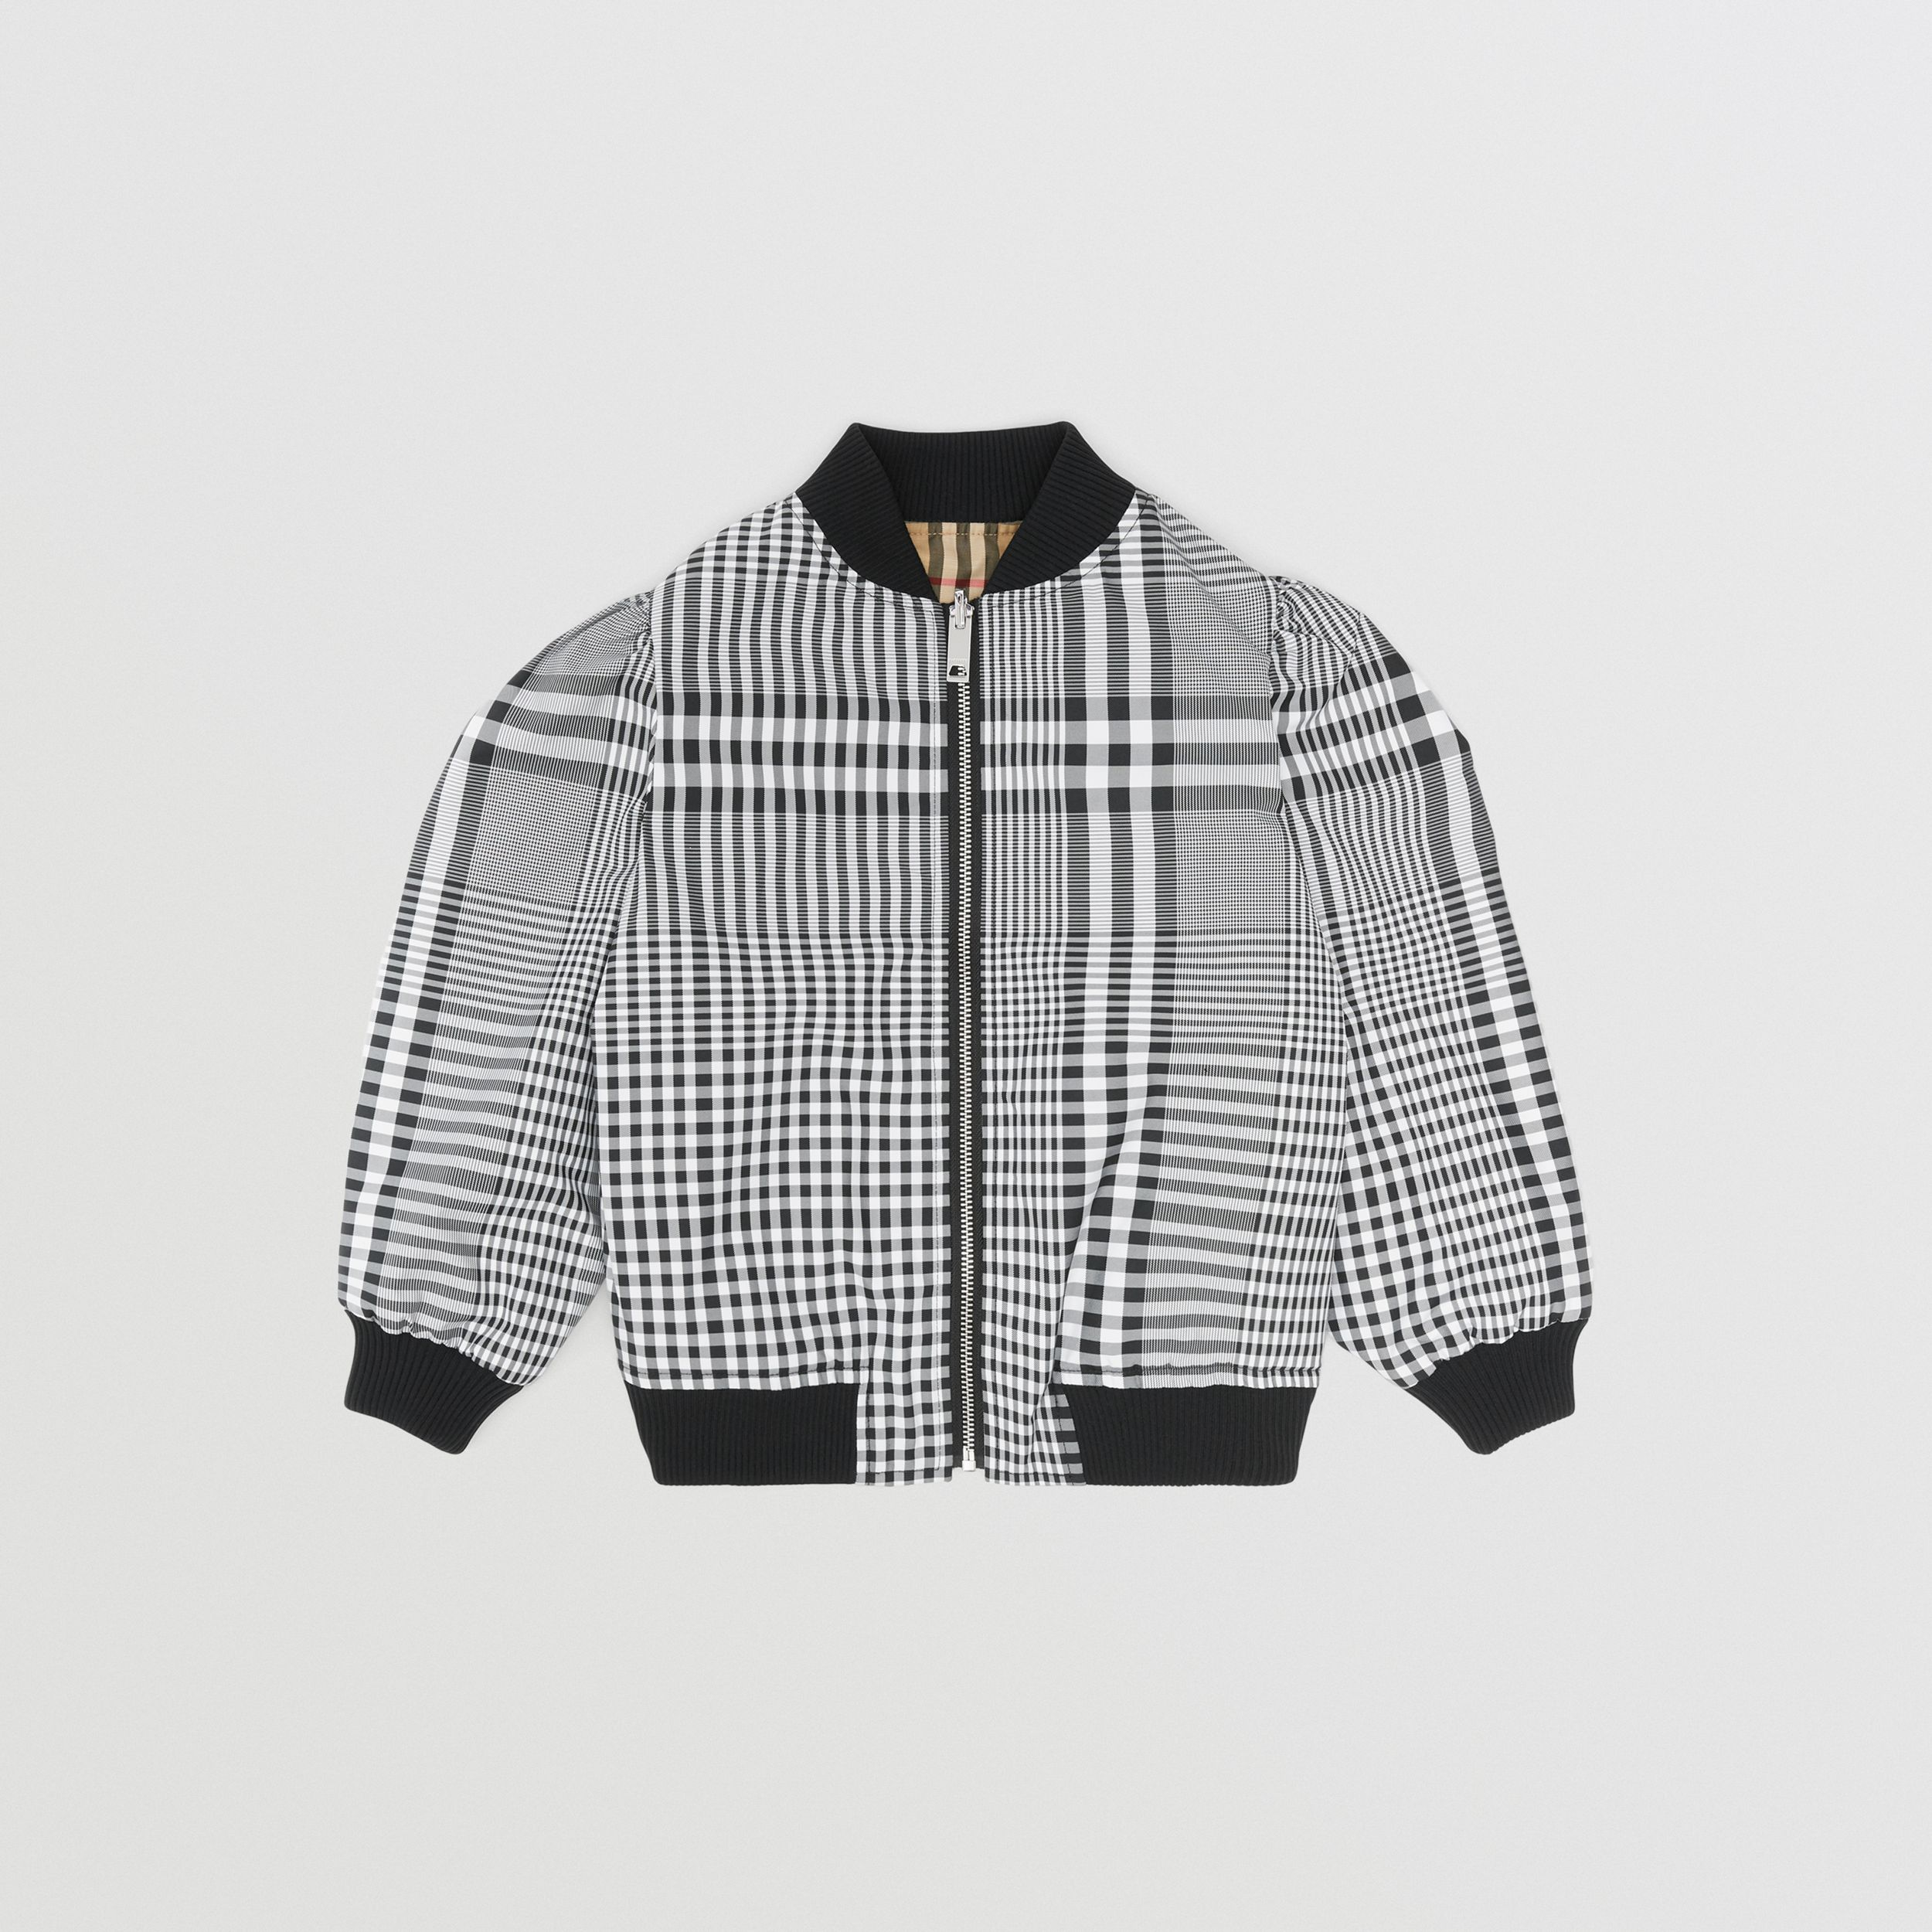 Logo Appliqué Reversible Check Bomber Jacket in Black | Burberry - 1